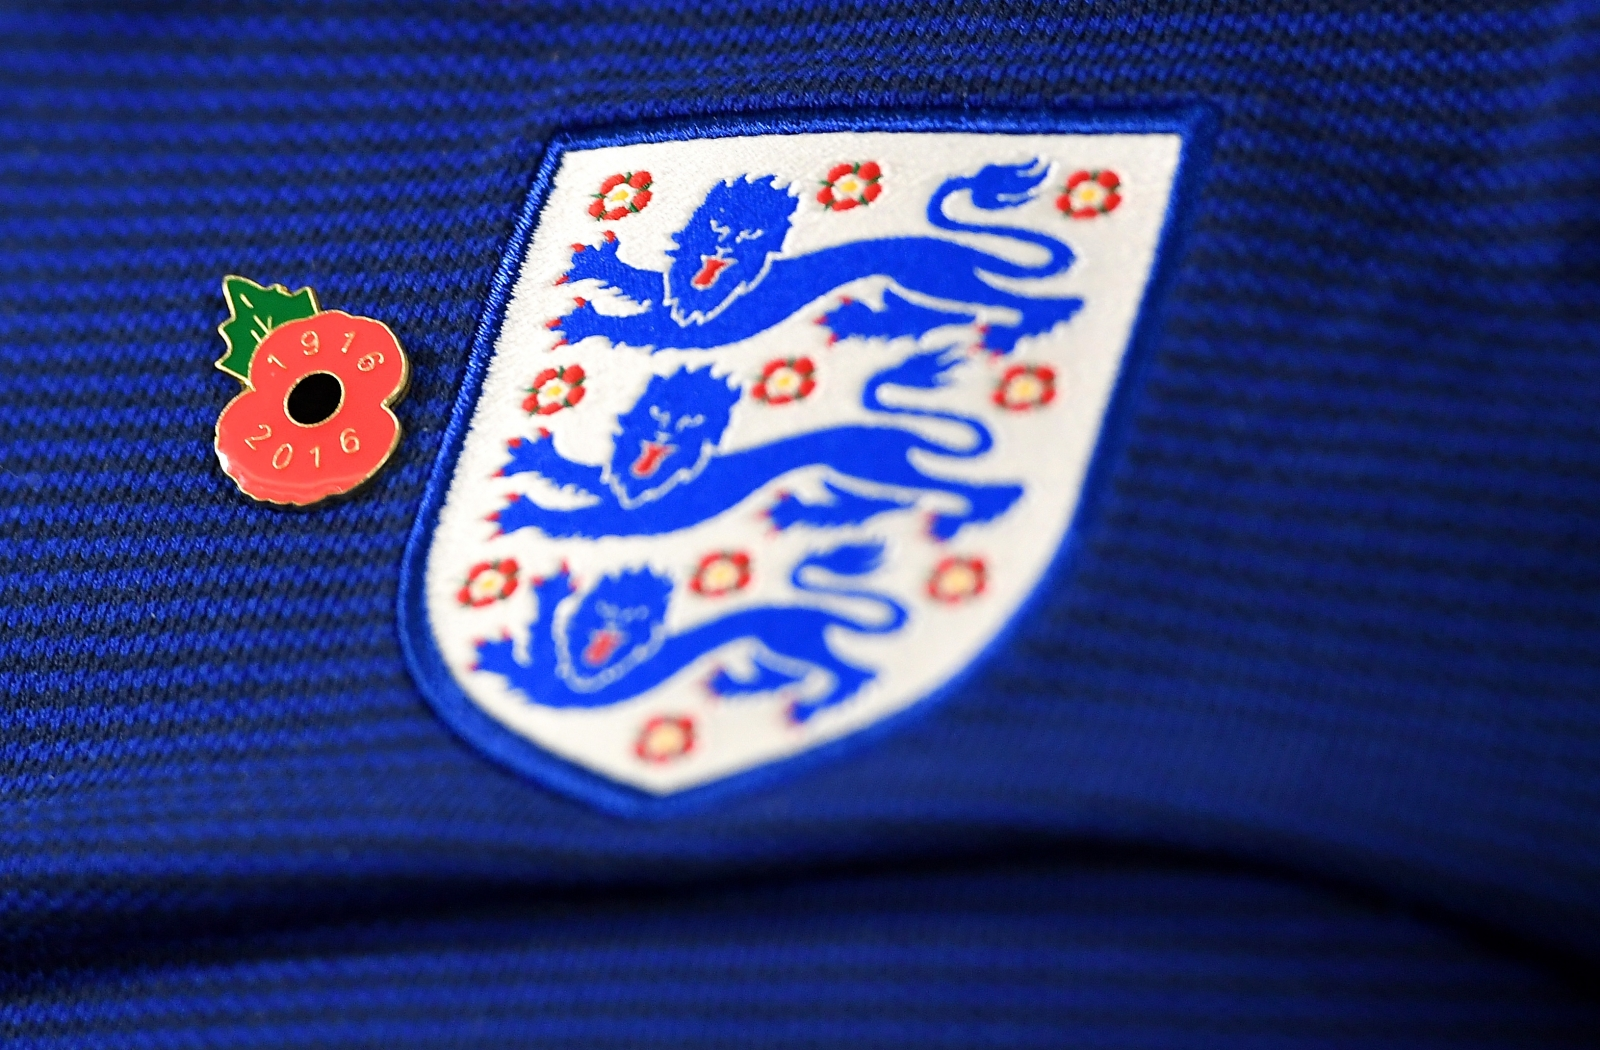 FA will challenge Federation Internationale de Football Association over any poppy fine